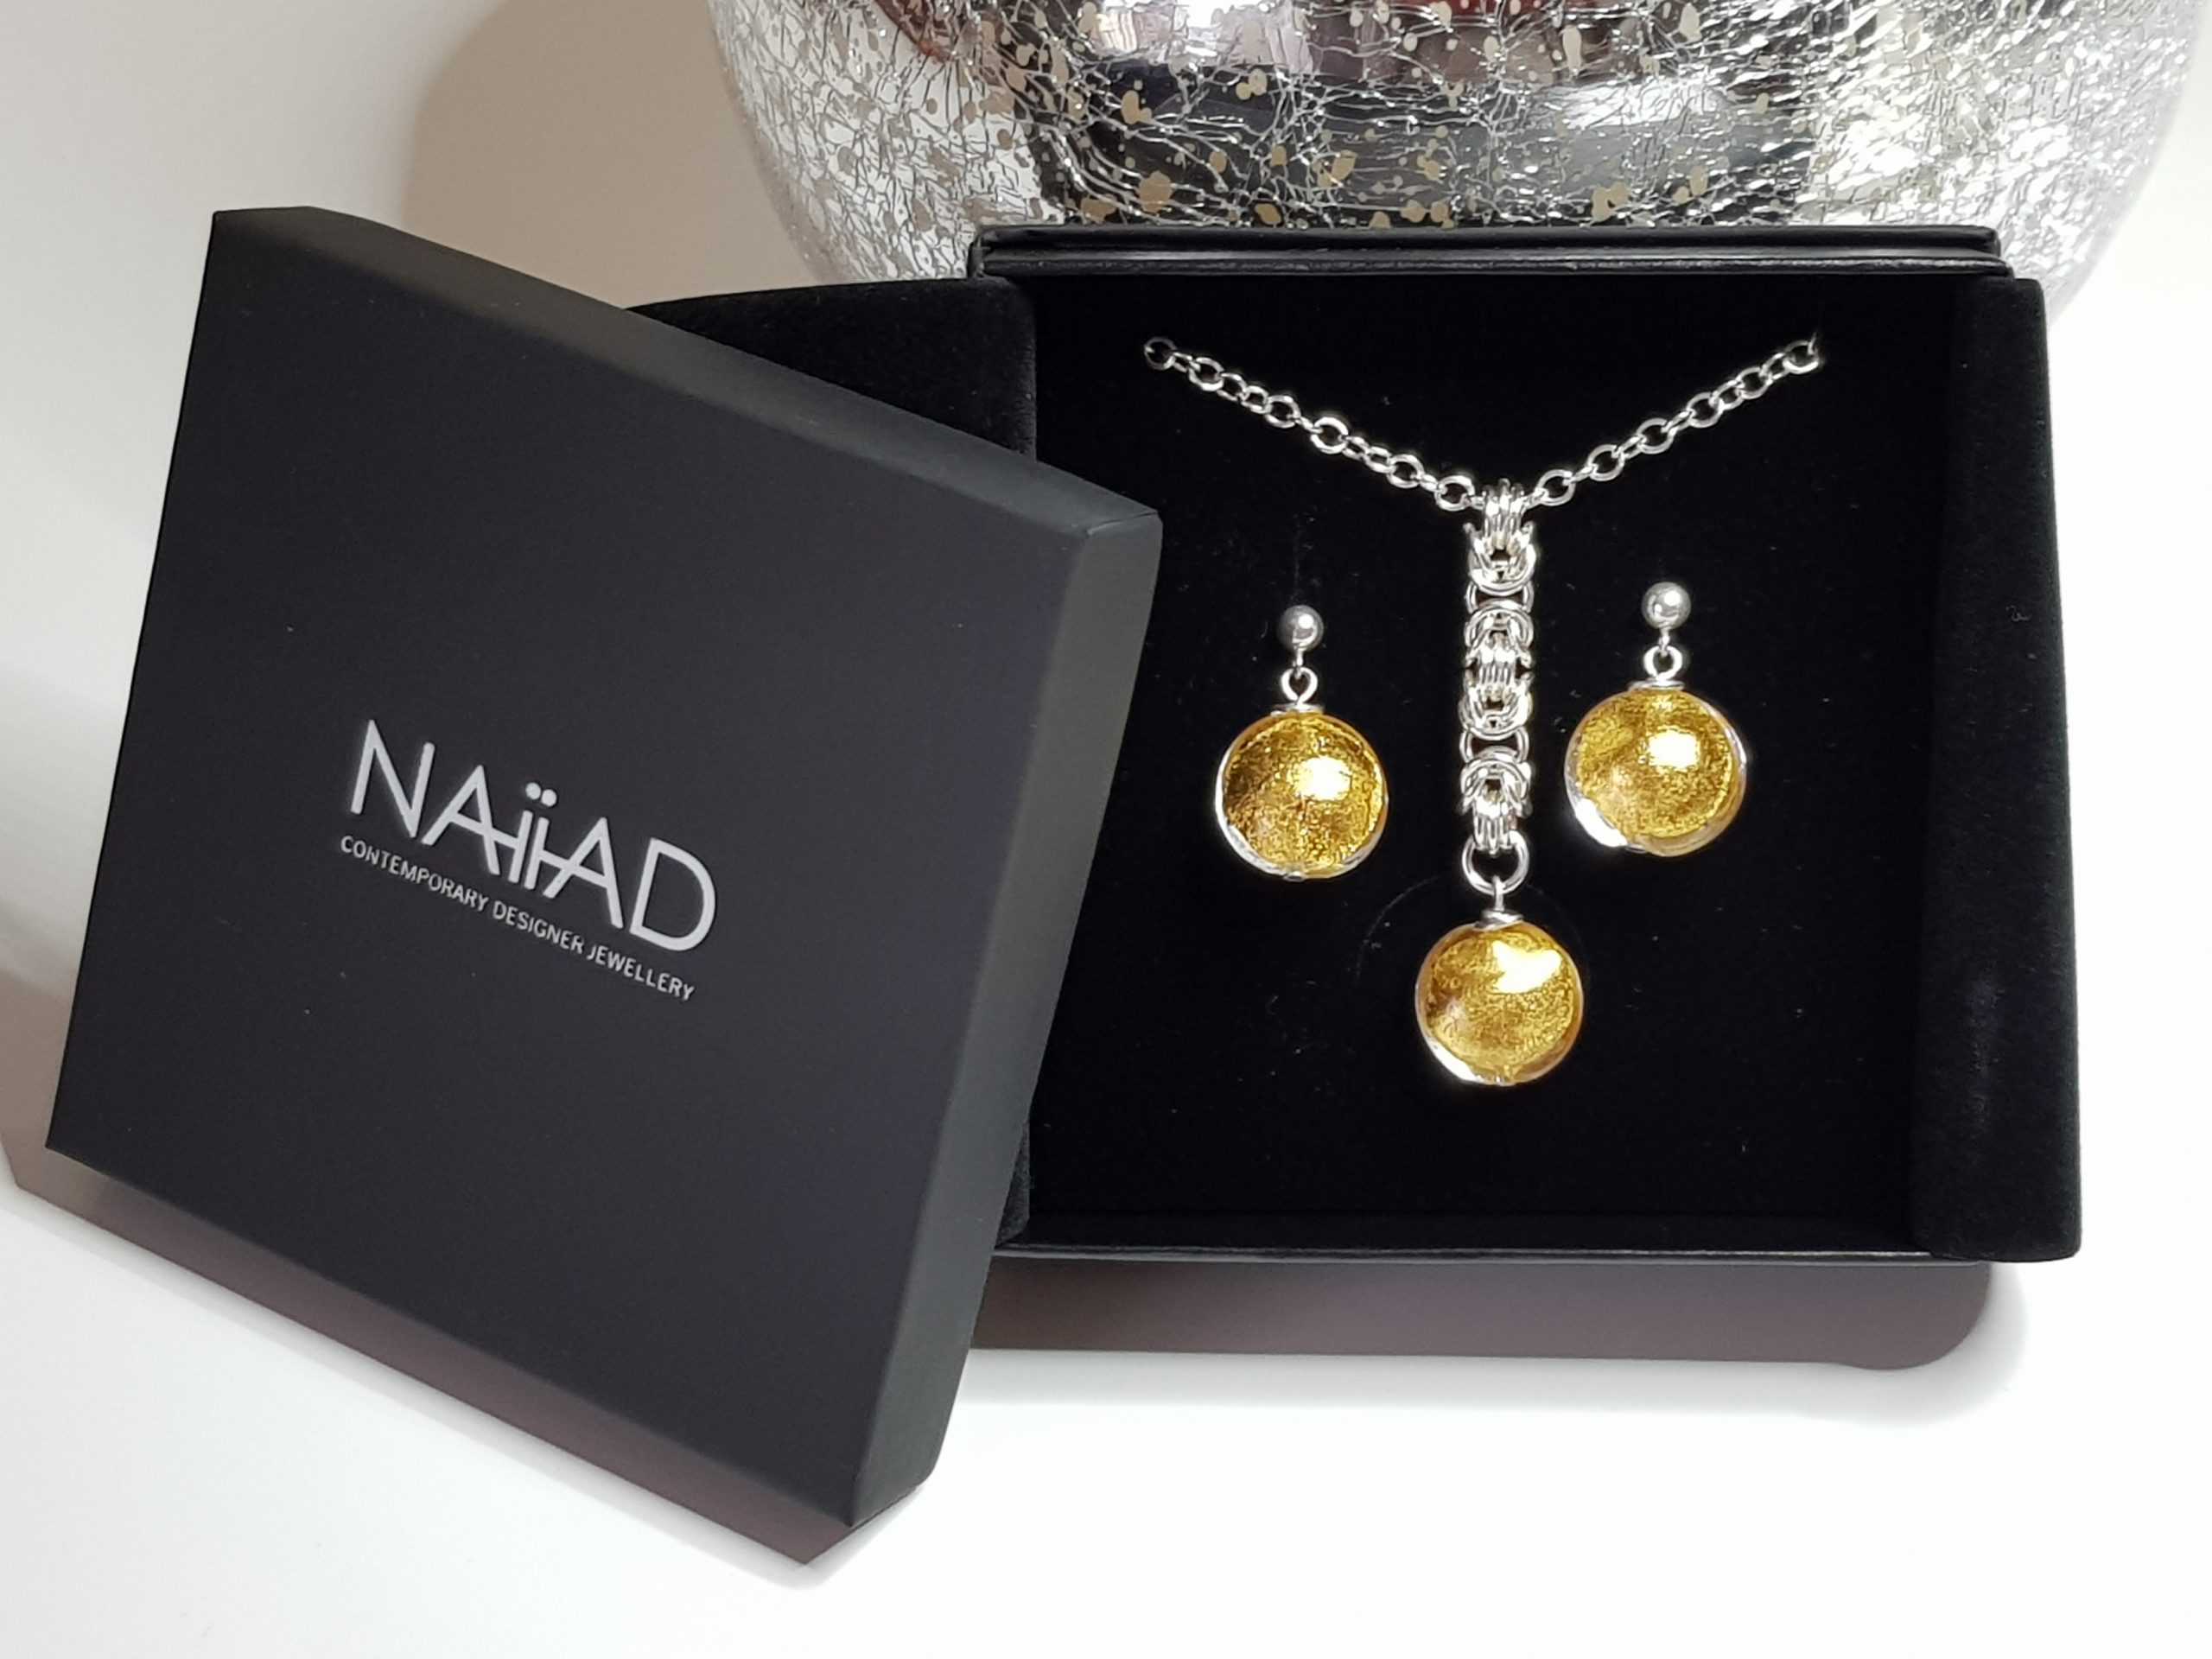 NAIIAD handmade Sterling silver Byzantine chainmail and 24k gold foil Murano glass necklace and earrings gift set